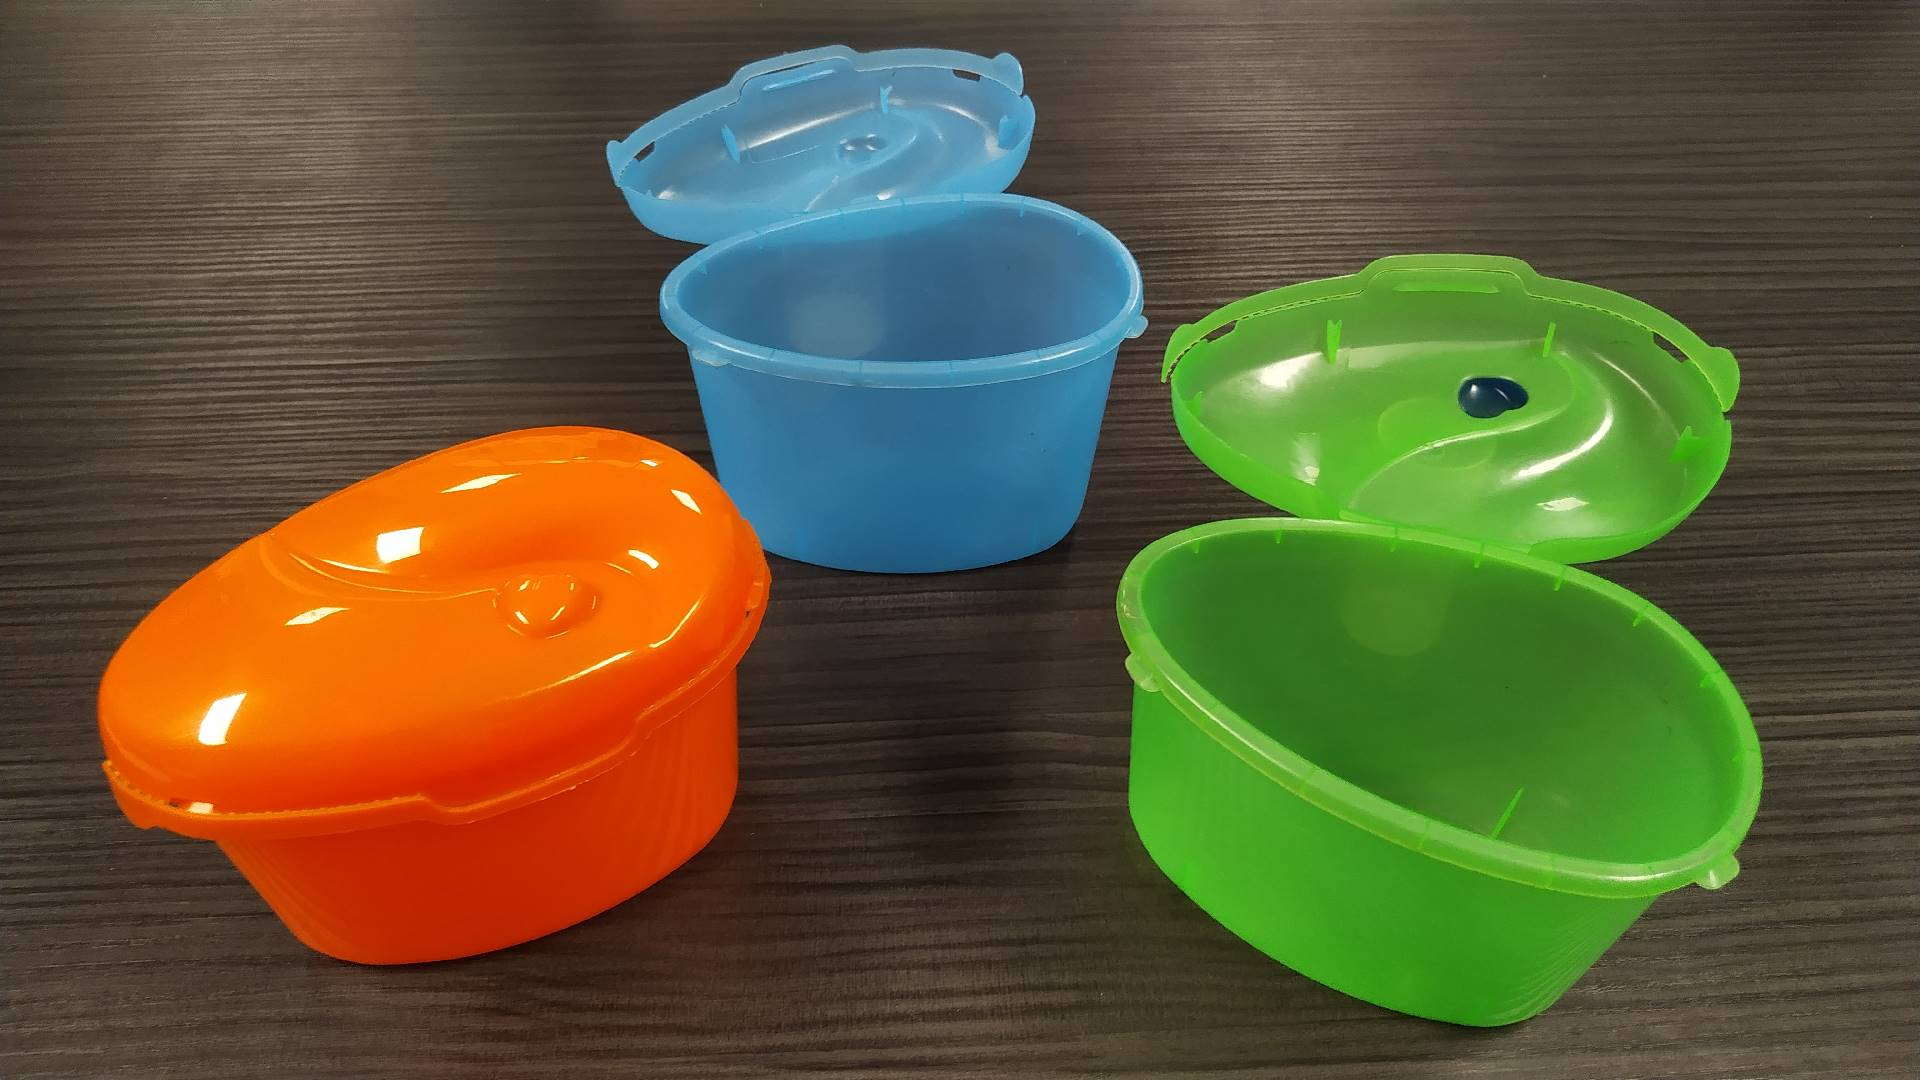 2 + 2 cavities mold POT WITH LID